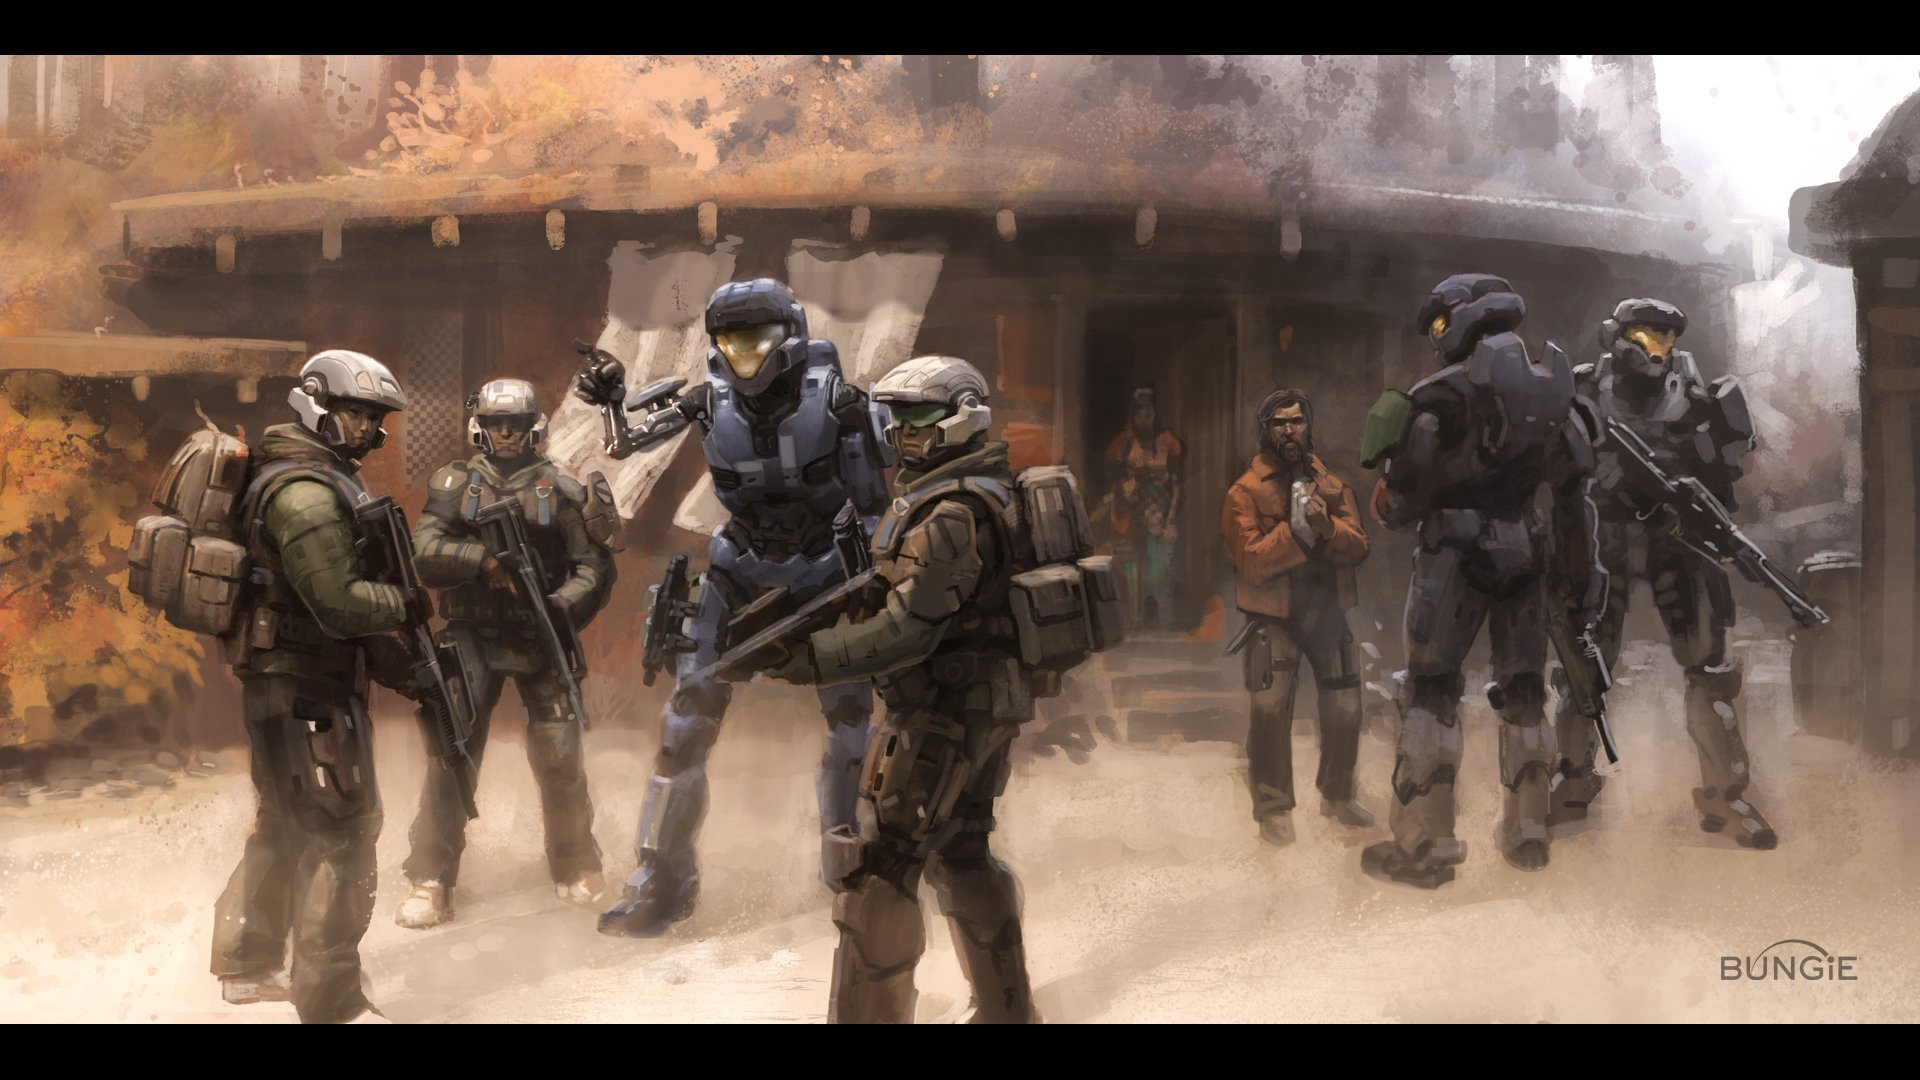 Halo Reach Ipad Wallpaper Spartan Halo Kat Halo Reach